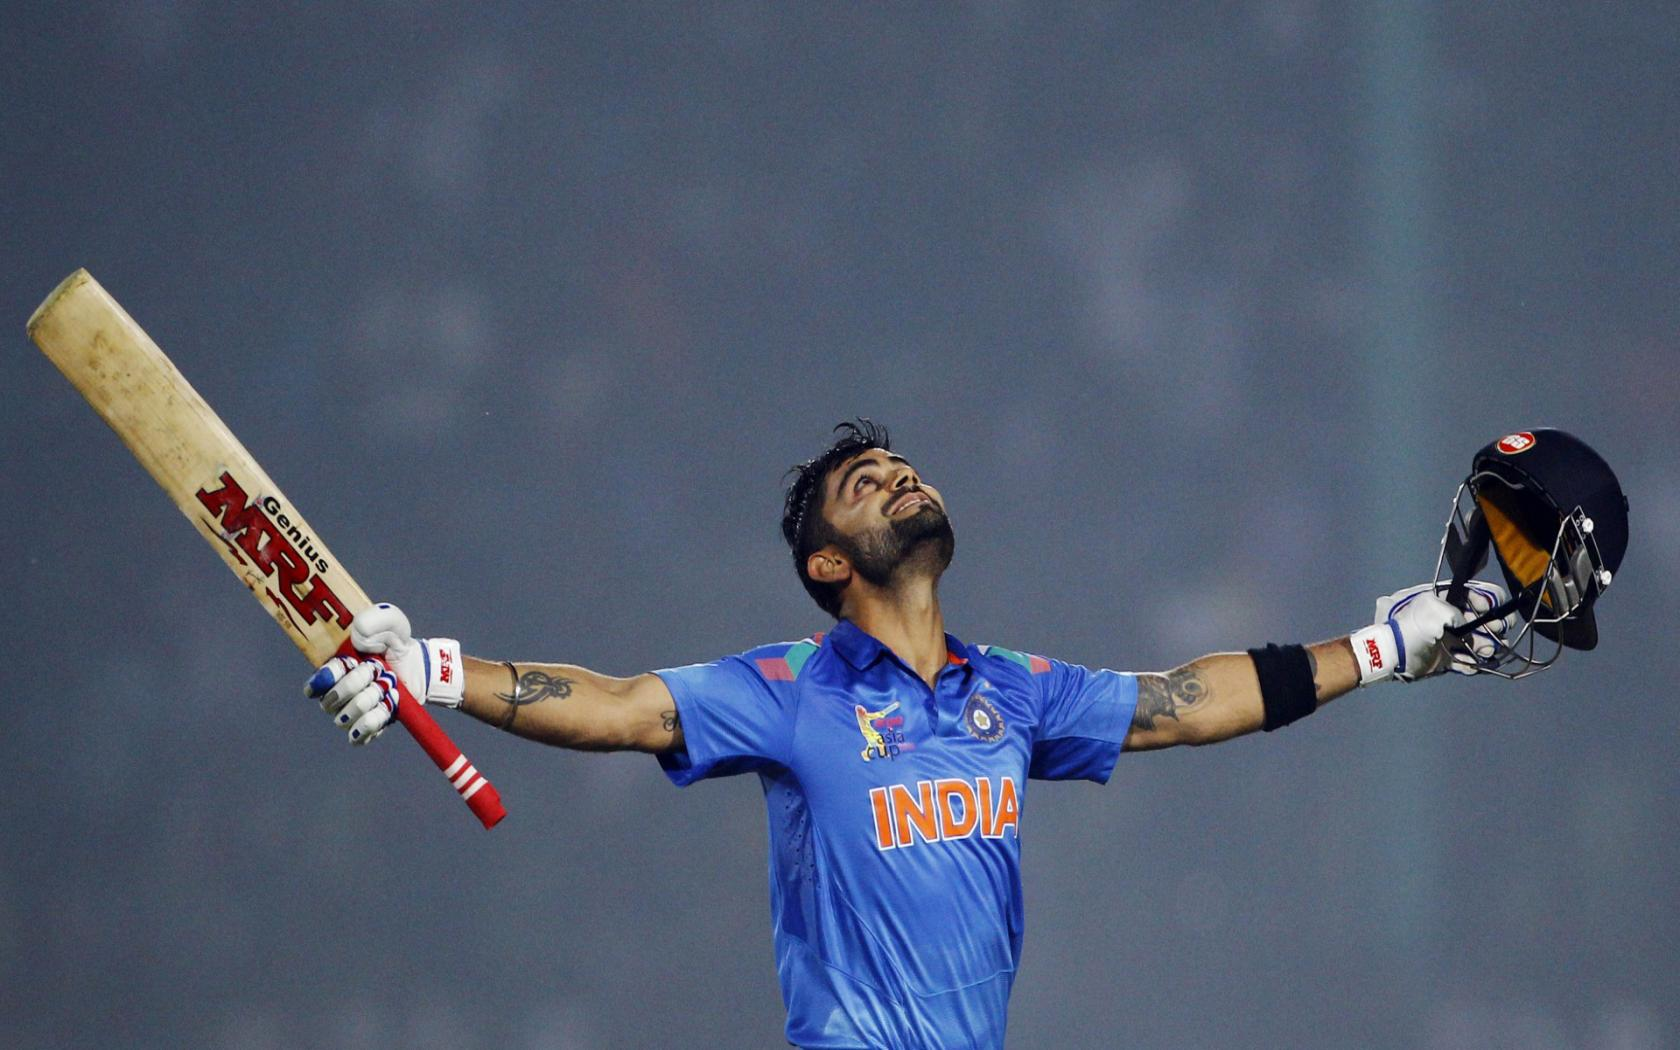 Virat Kohli Wallpaper 2016: Cricket World Cup 2015 Wallpapers For IPhone & IPad